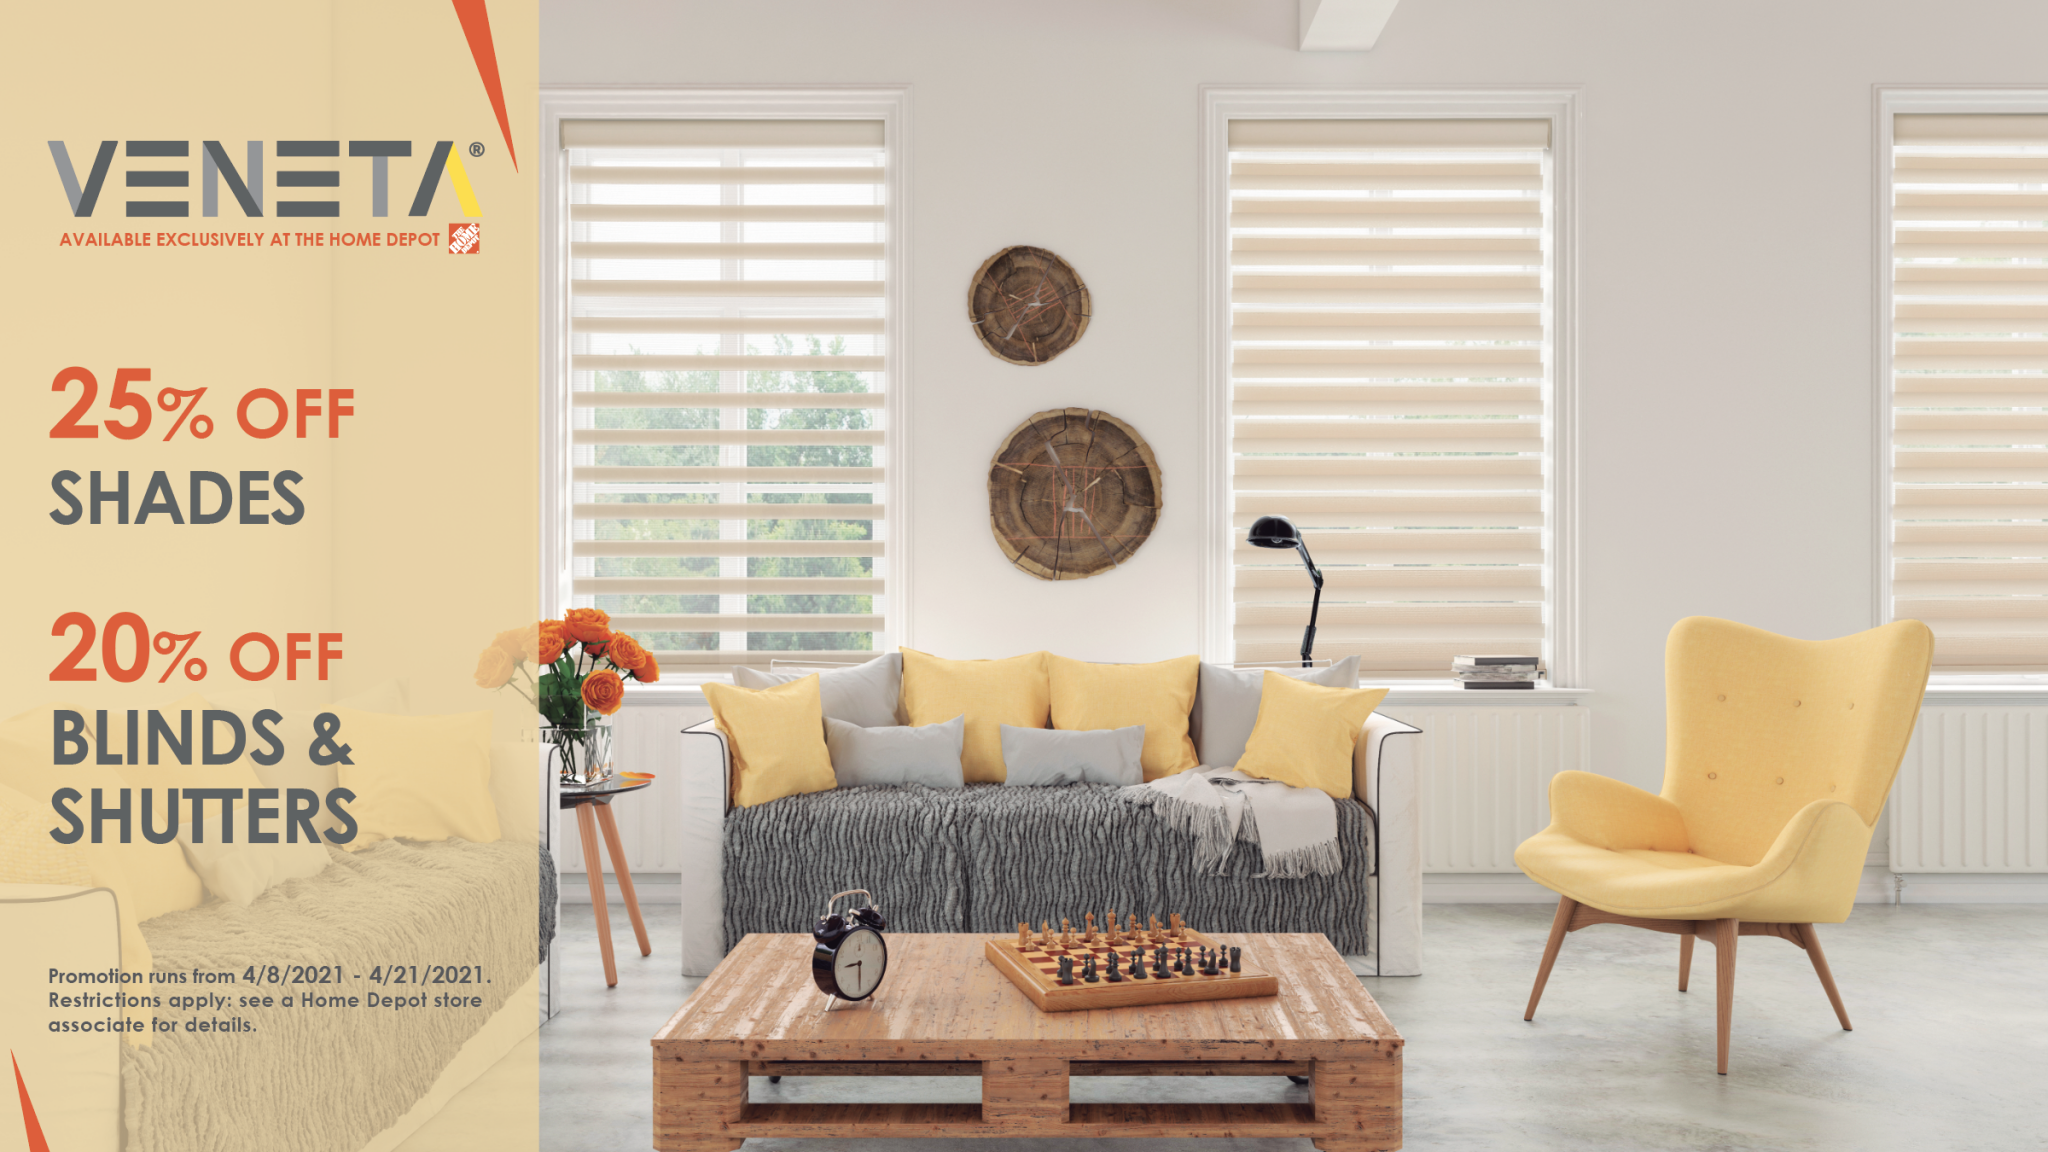 25% off Veneta shades and 20% off on blinds and shutters from 4/8 through 4/21! Veneta Window Fashions are exclusively available at The Home Depot.